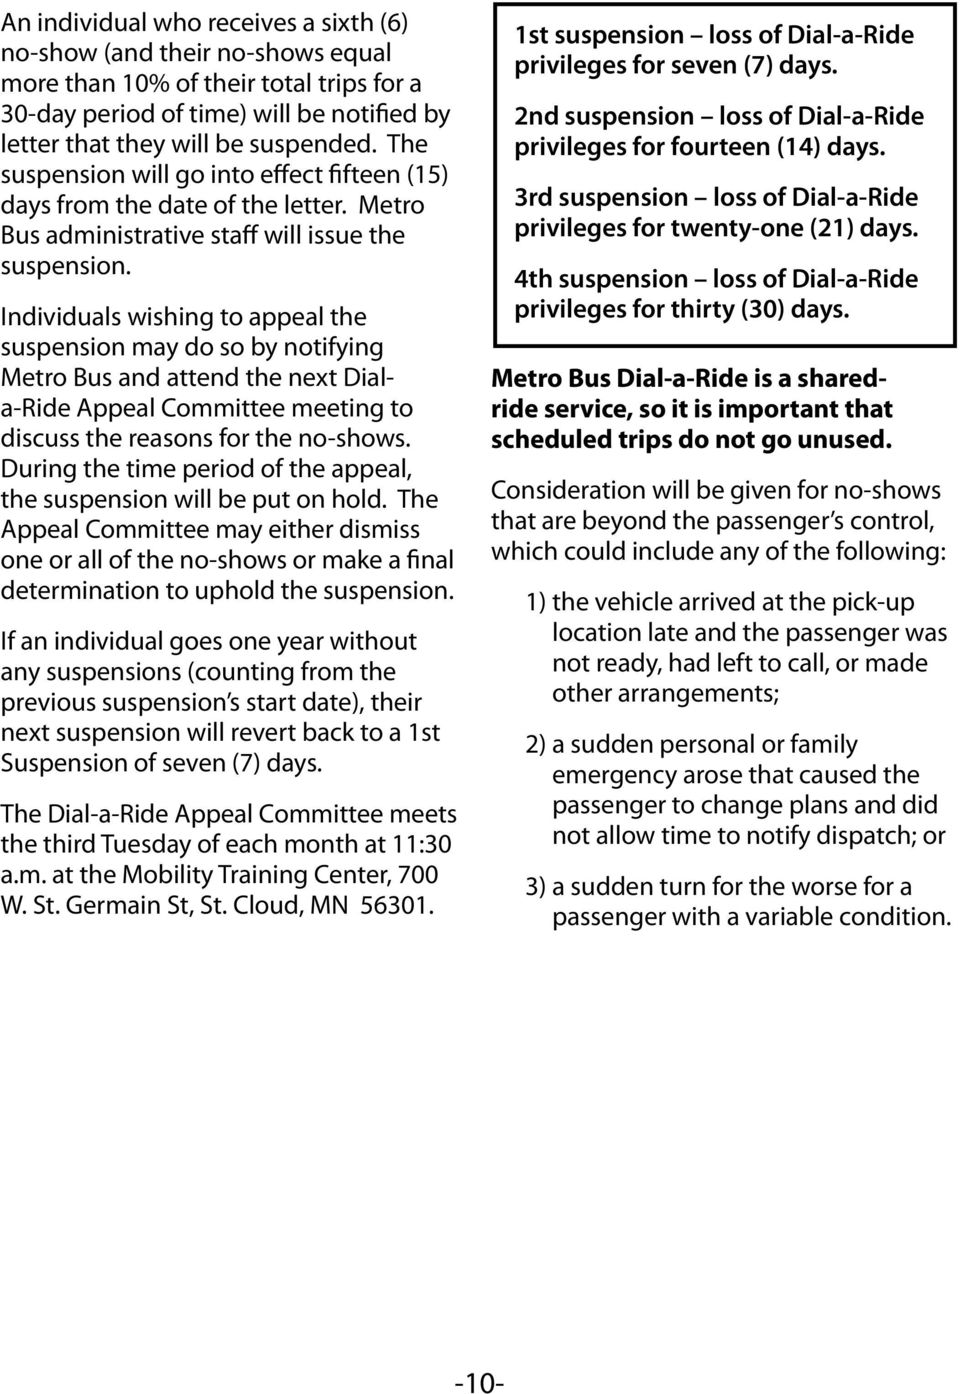 Individuals wishing to appeal the suspension may do so by notifying Metro Bus and attend the next Diala-Ride Appeal Committee meeting to discuss the reasons for the no-shows.